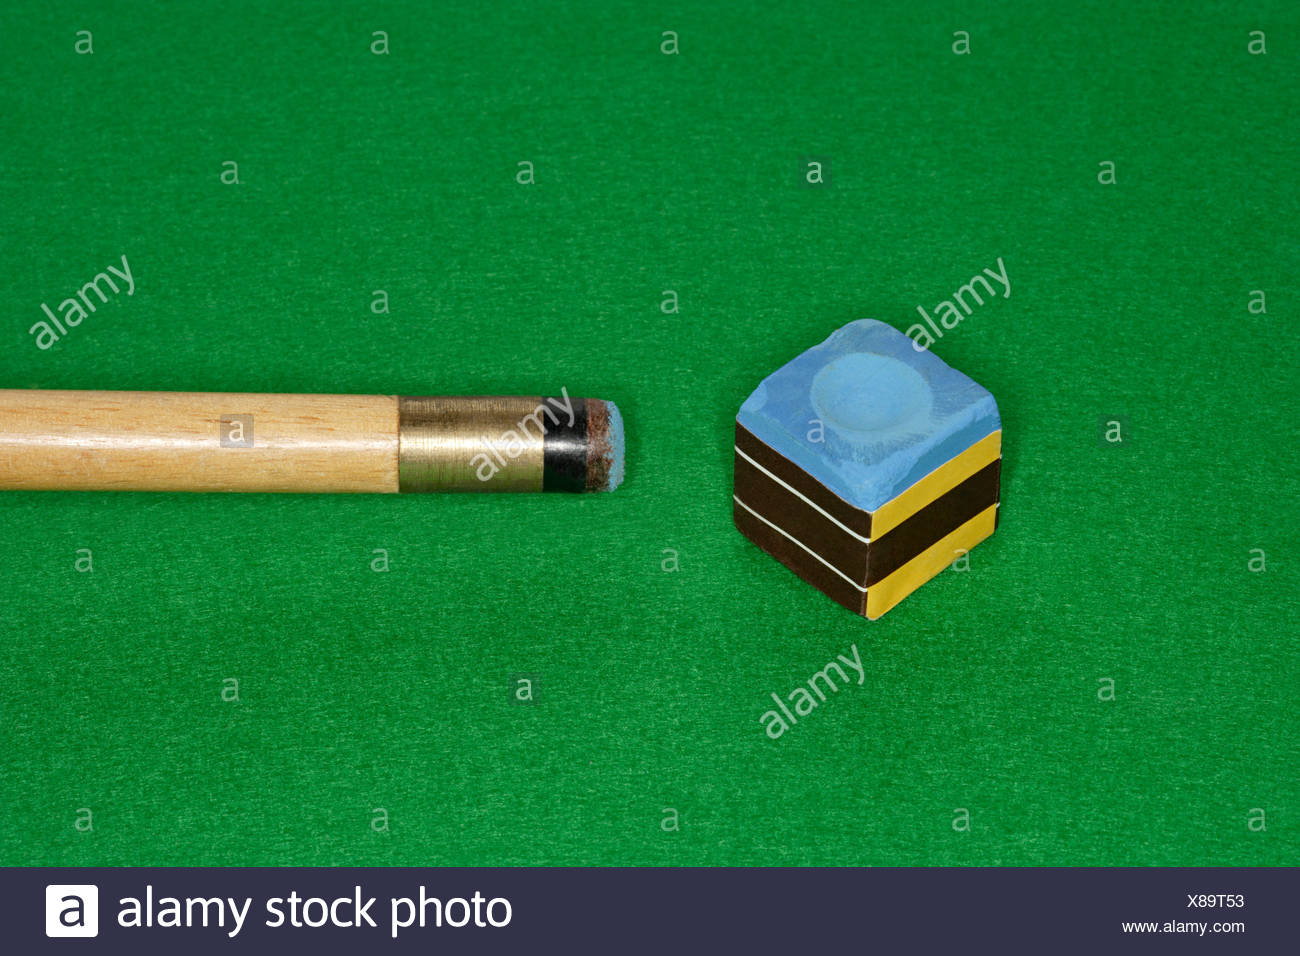 Snooker cue and chalk - Stock Image